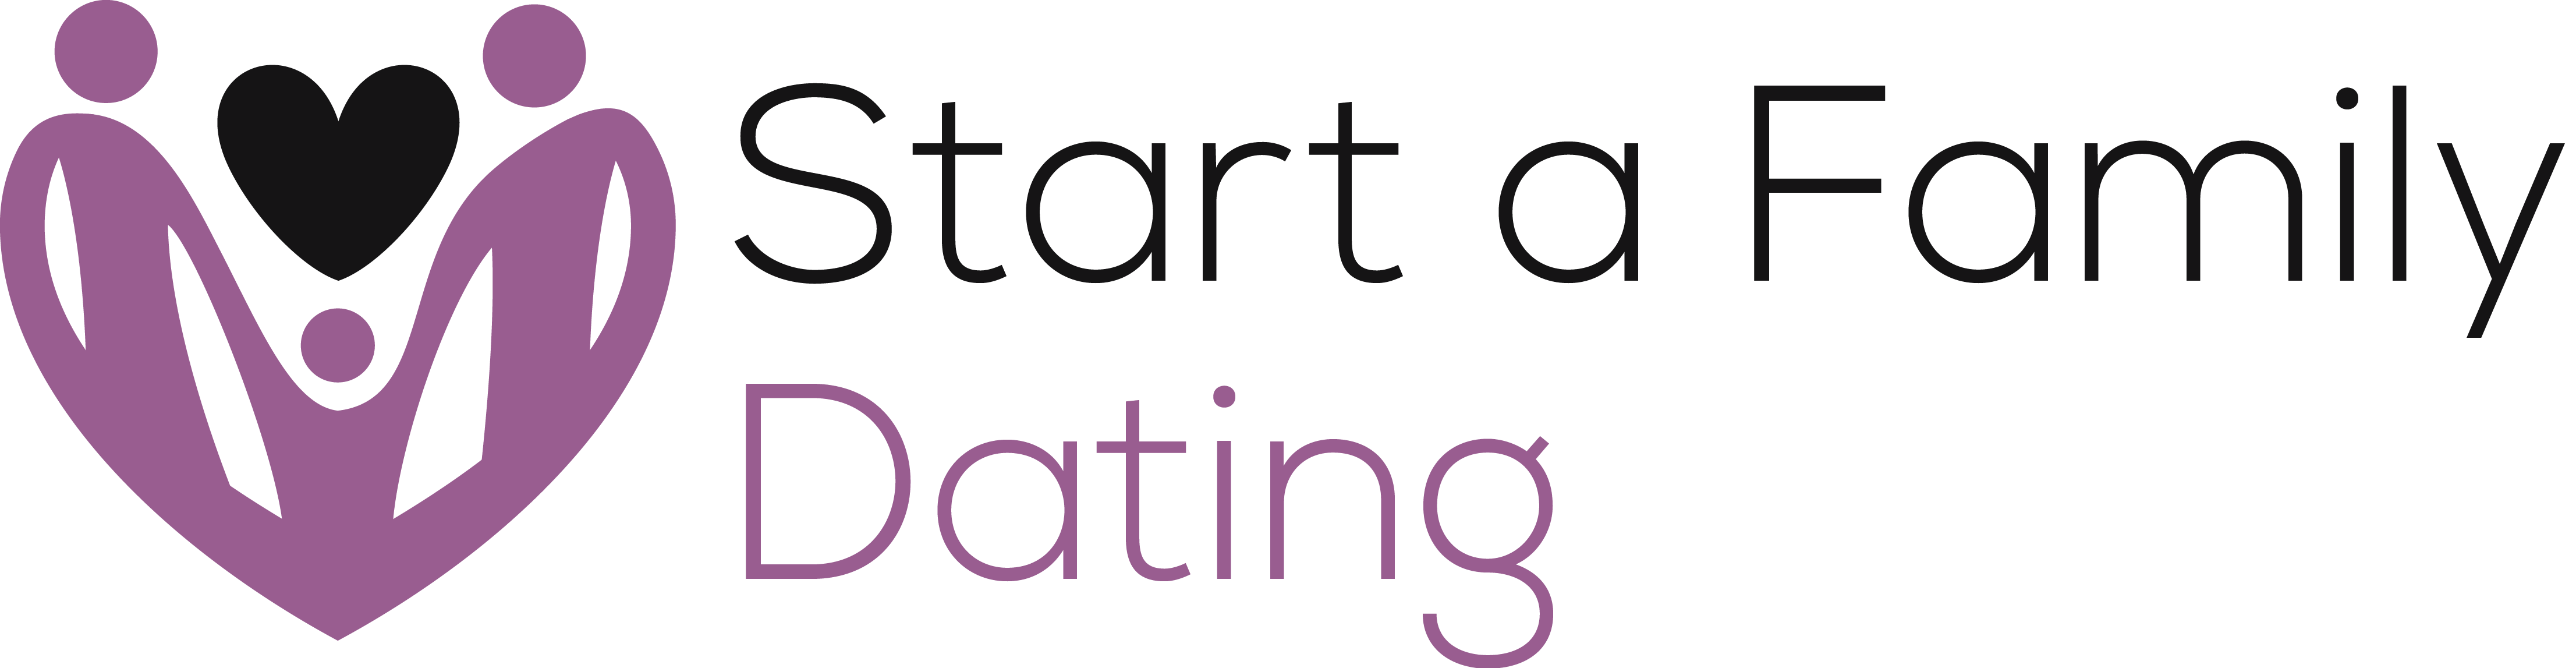 Start a Family Dating